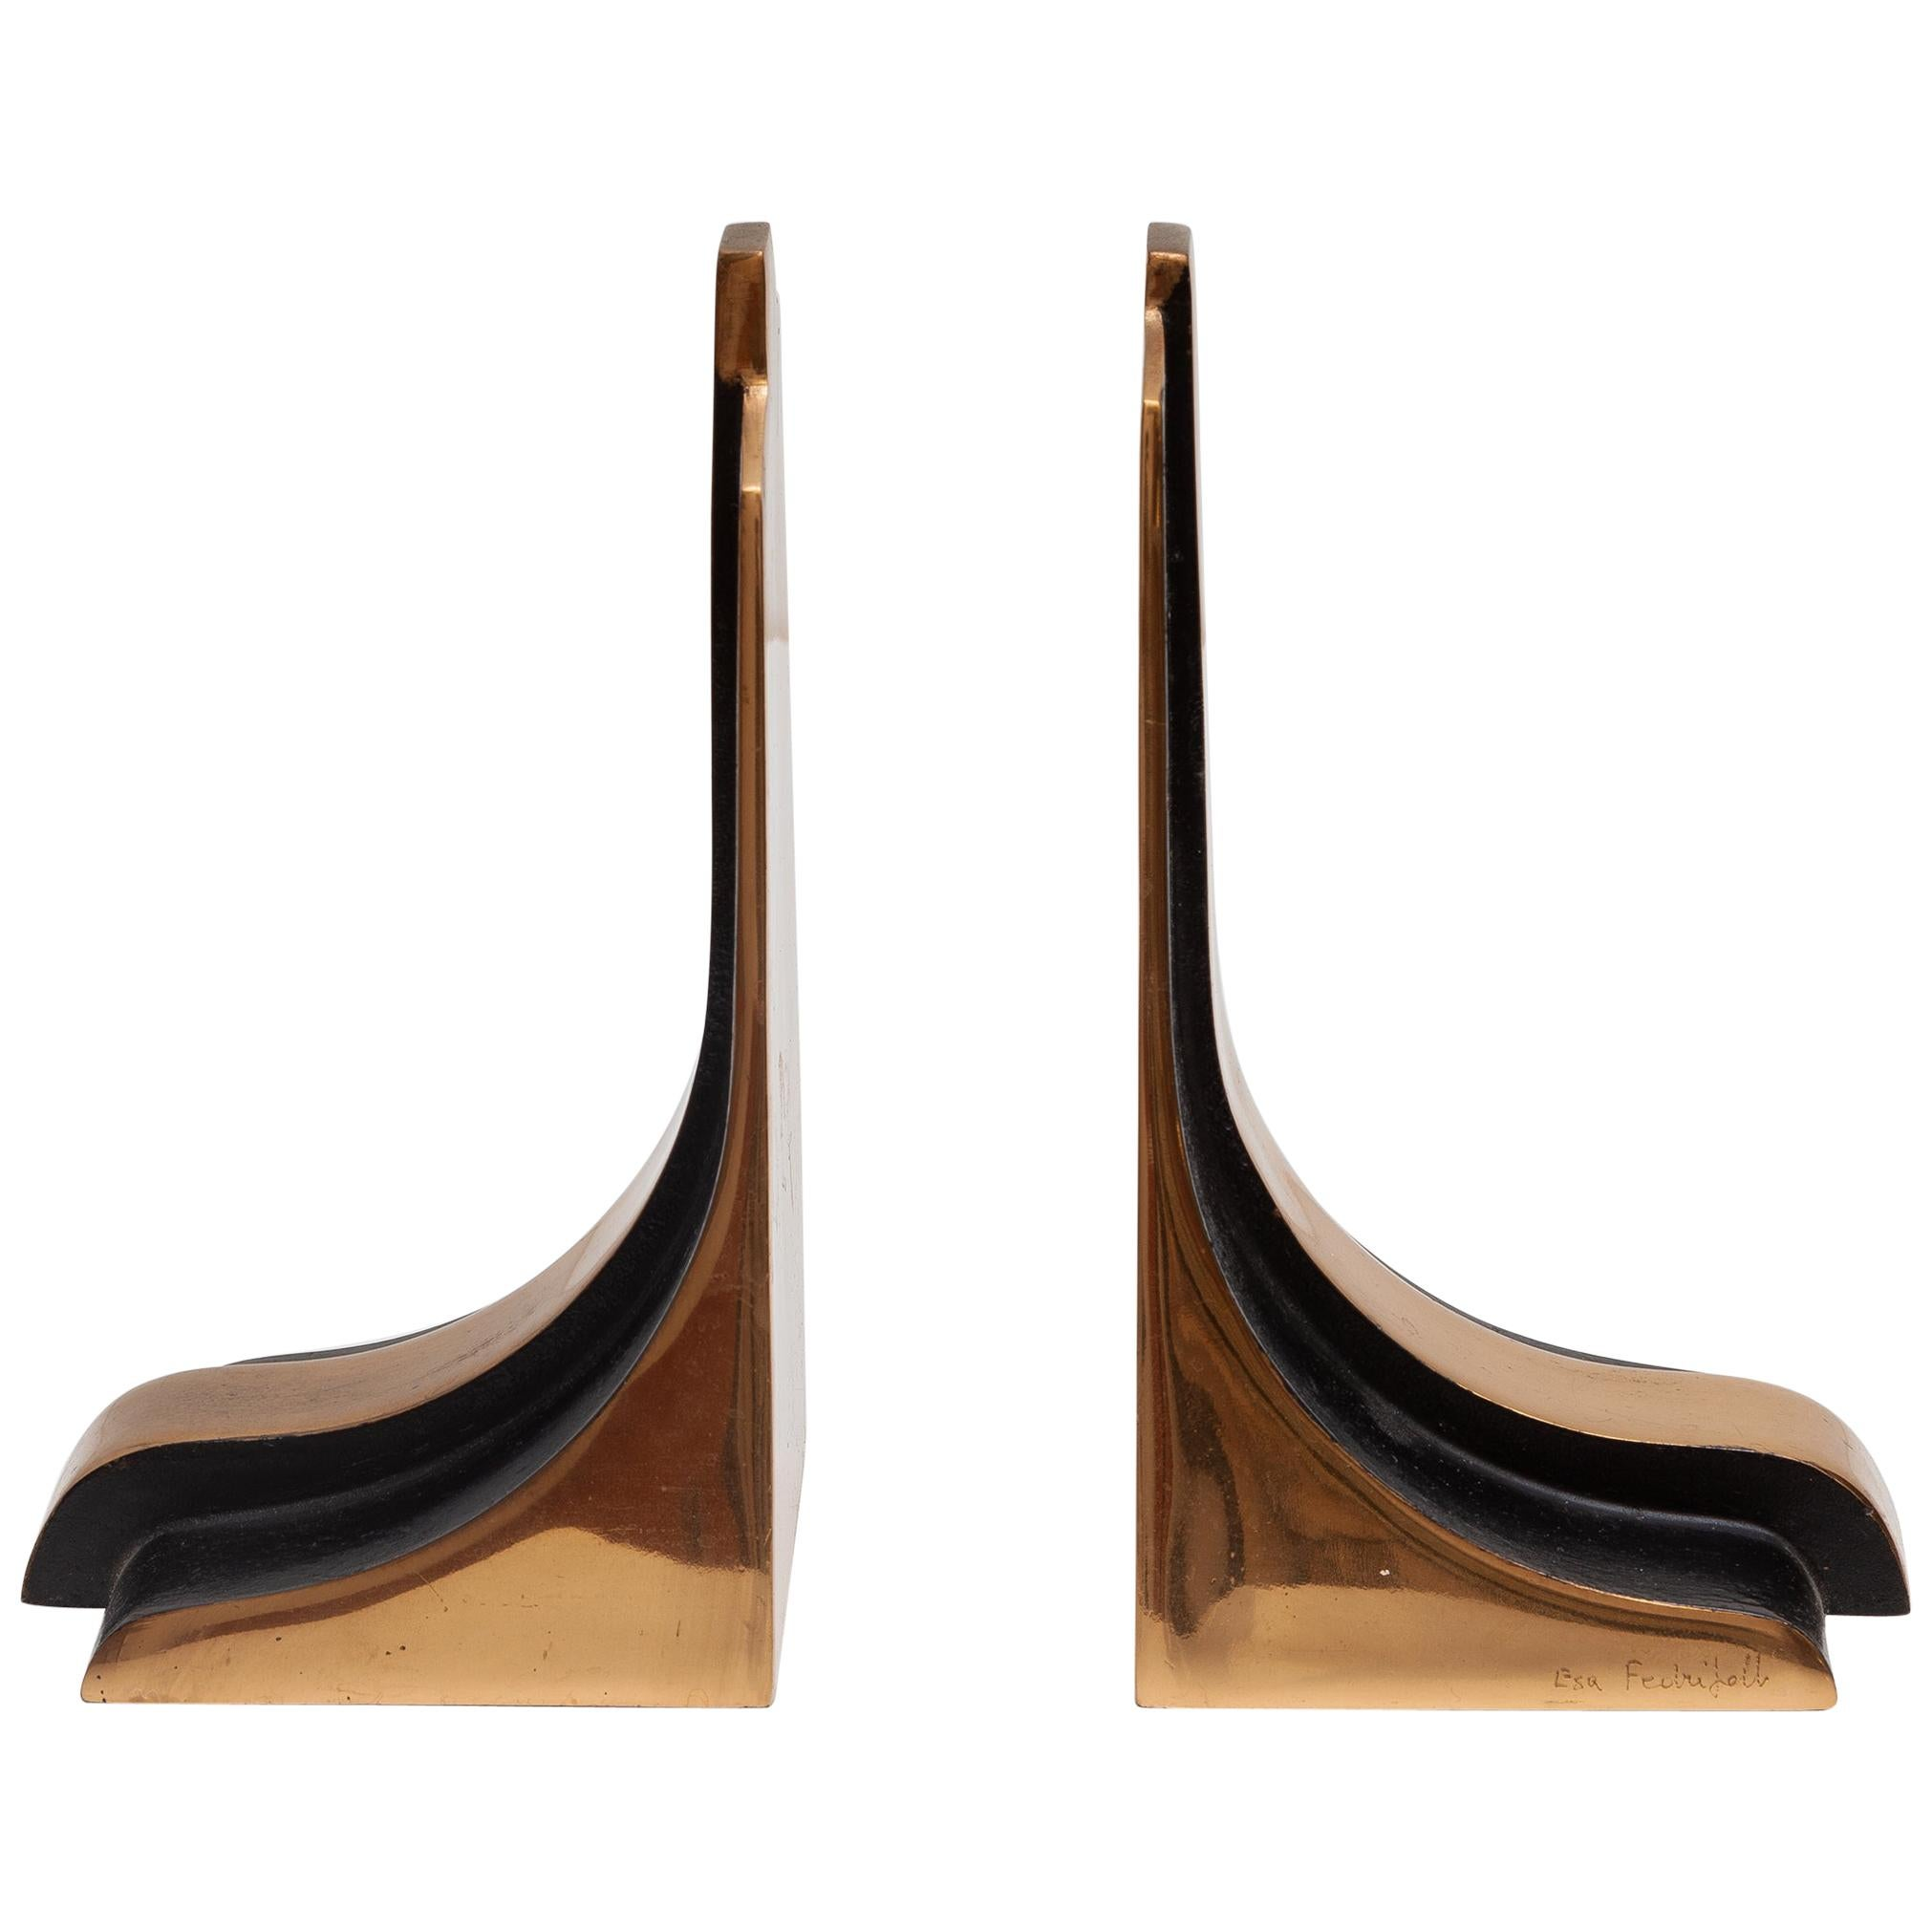 "Esa Fedrigolli Bookends Manufacture ""Esart Made in Italy"", 1970s"